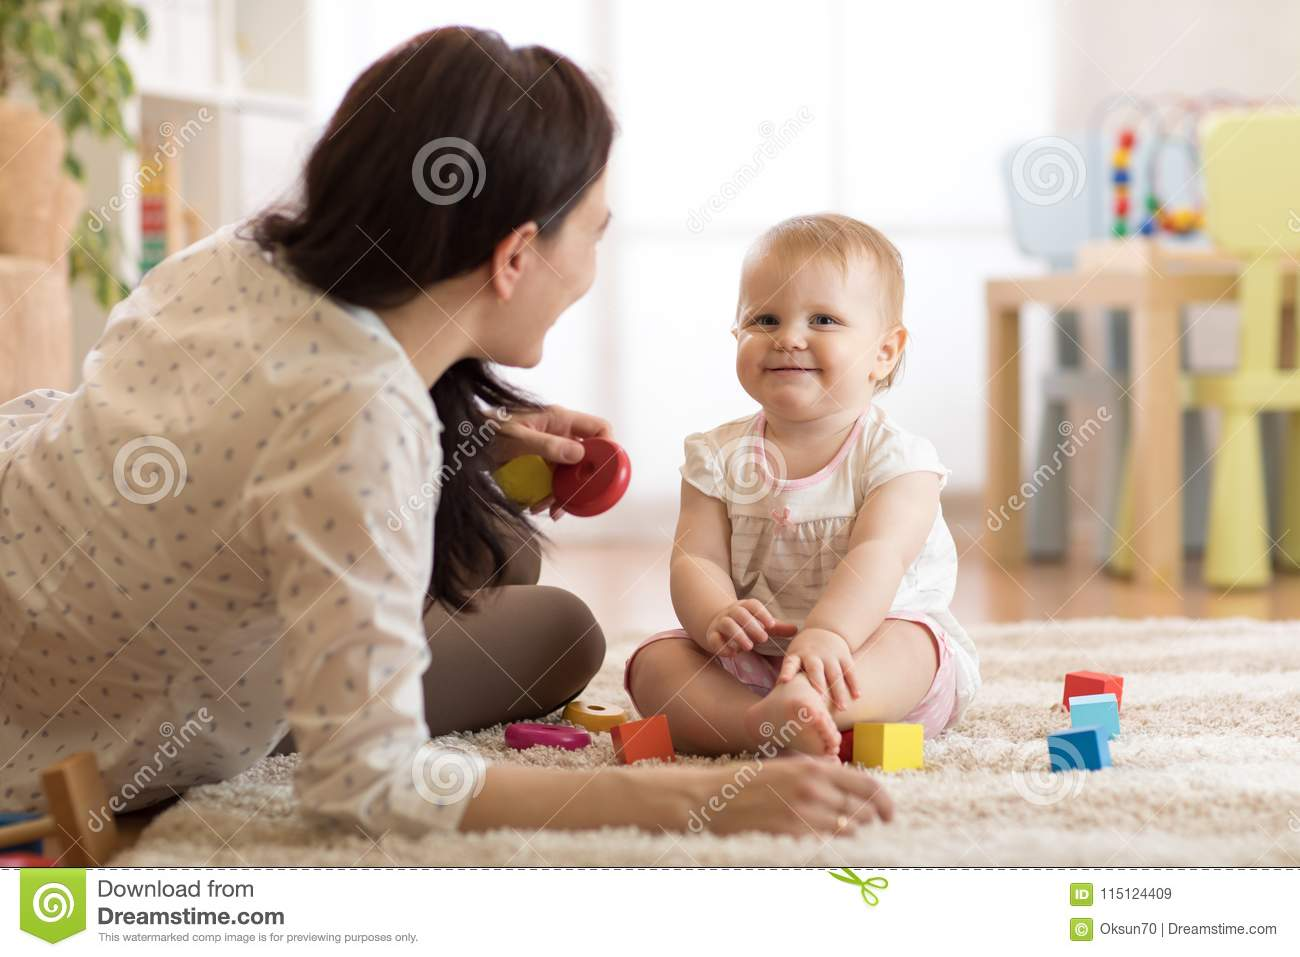 Adorable baby girl playing with educational toys in nursery. Child having fun with colorful different toys at home